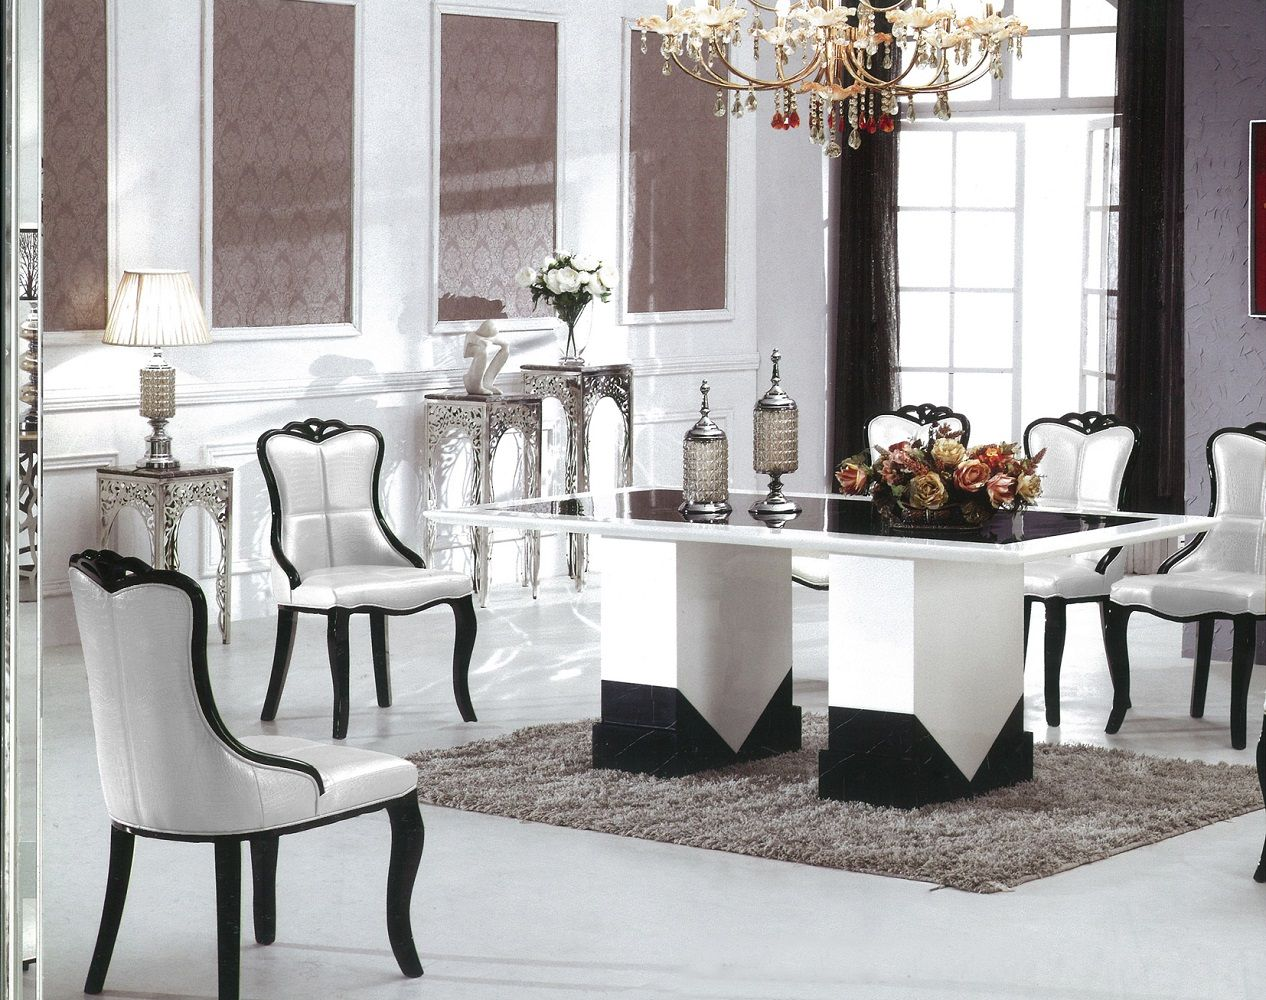 Stunning White Black Marble Dining Table For 4 White Dining Chairs Above  White Ceramic Floor Used Soft Carpet Under Chandelier Beside Lampshade For  Modern ...